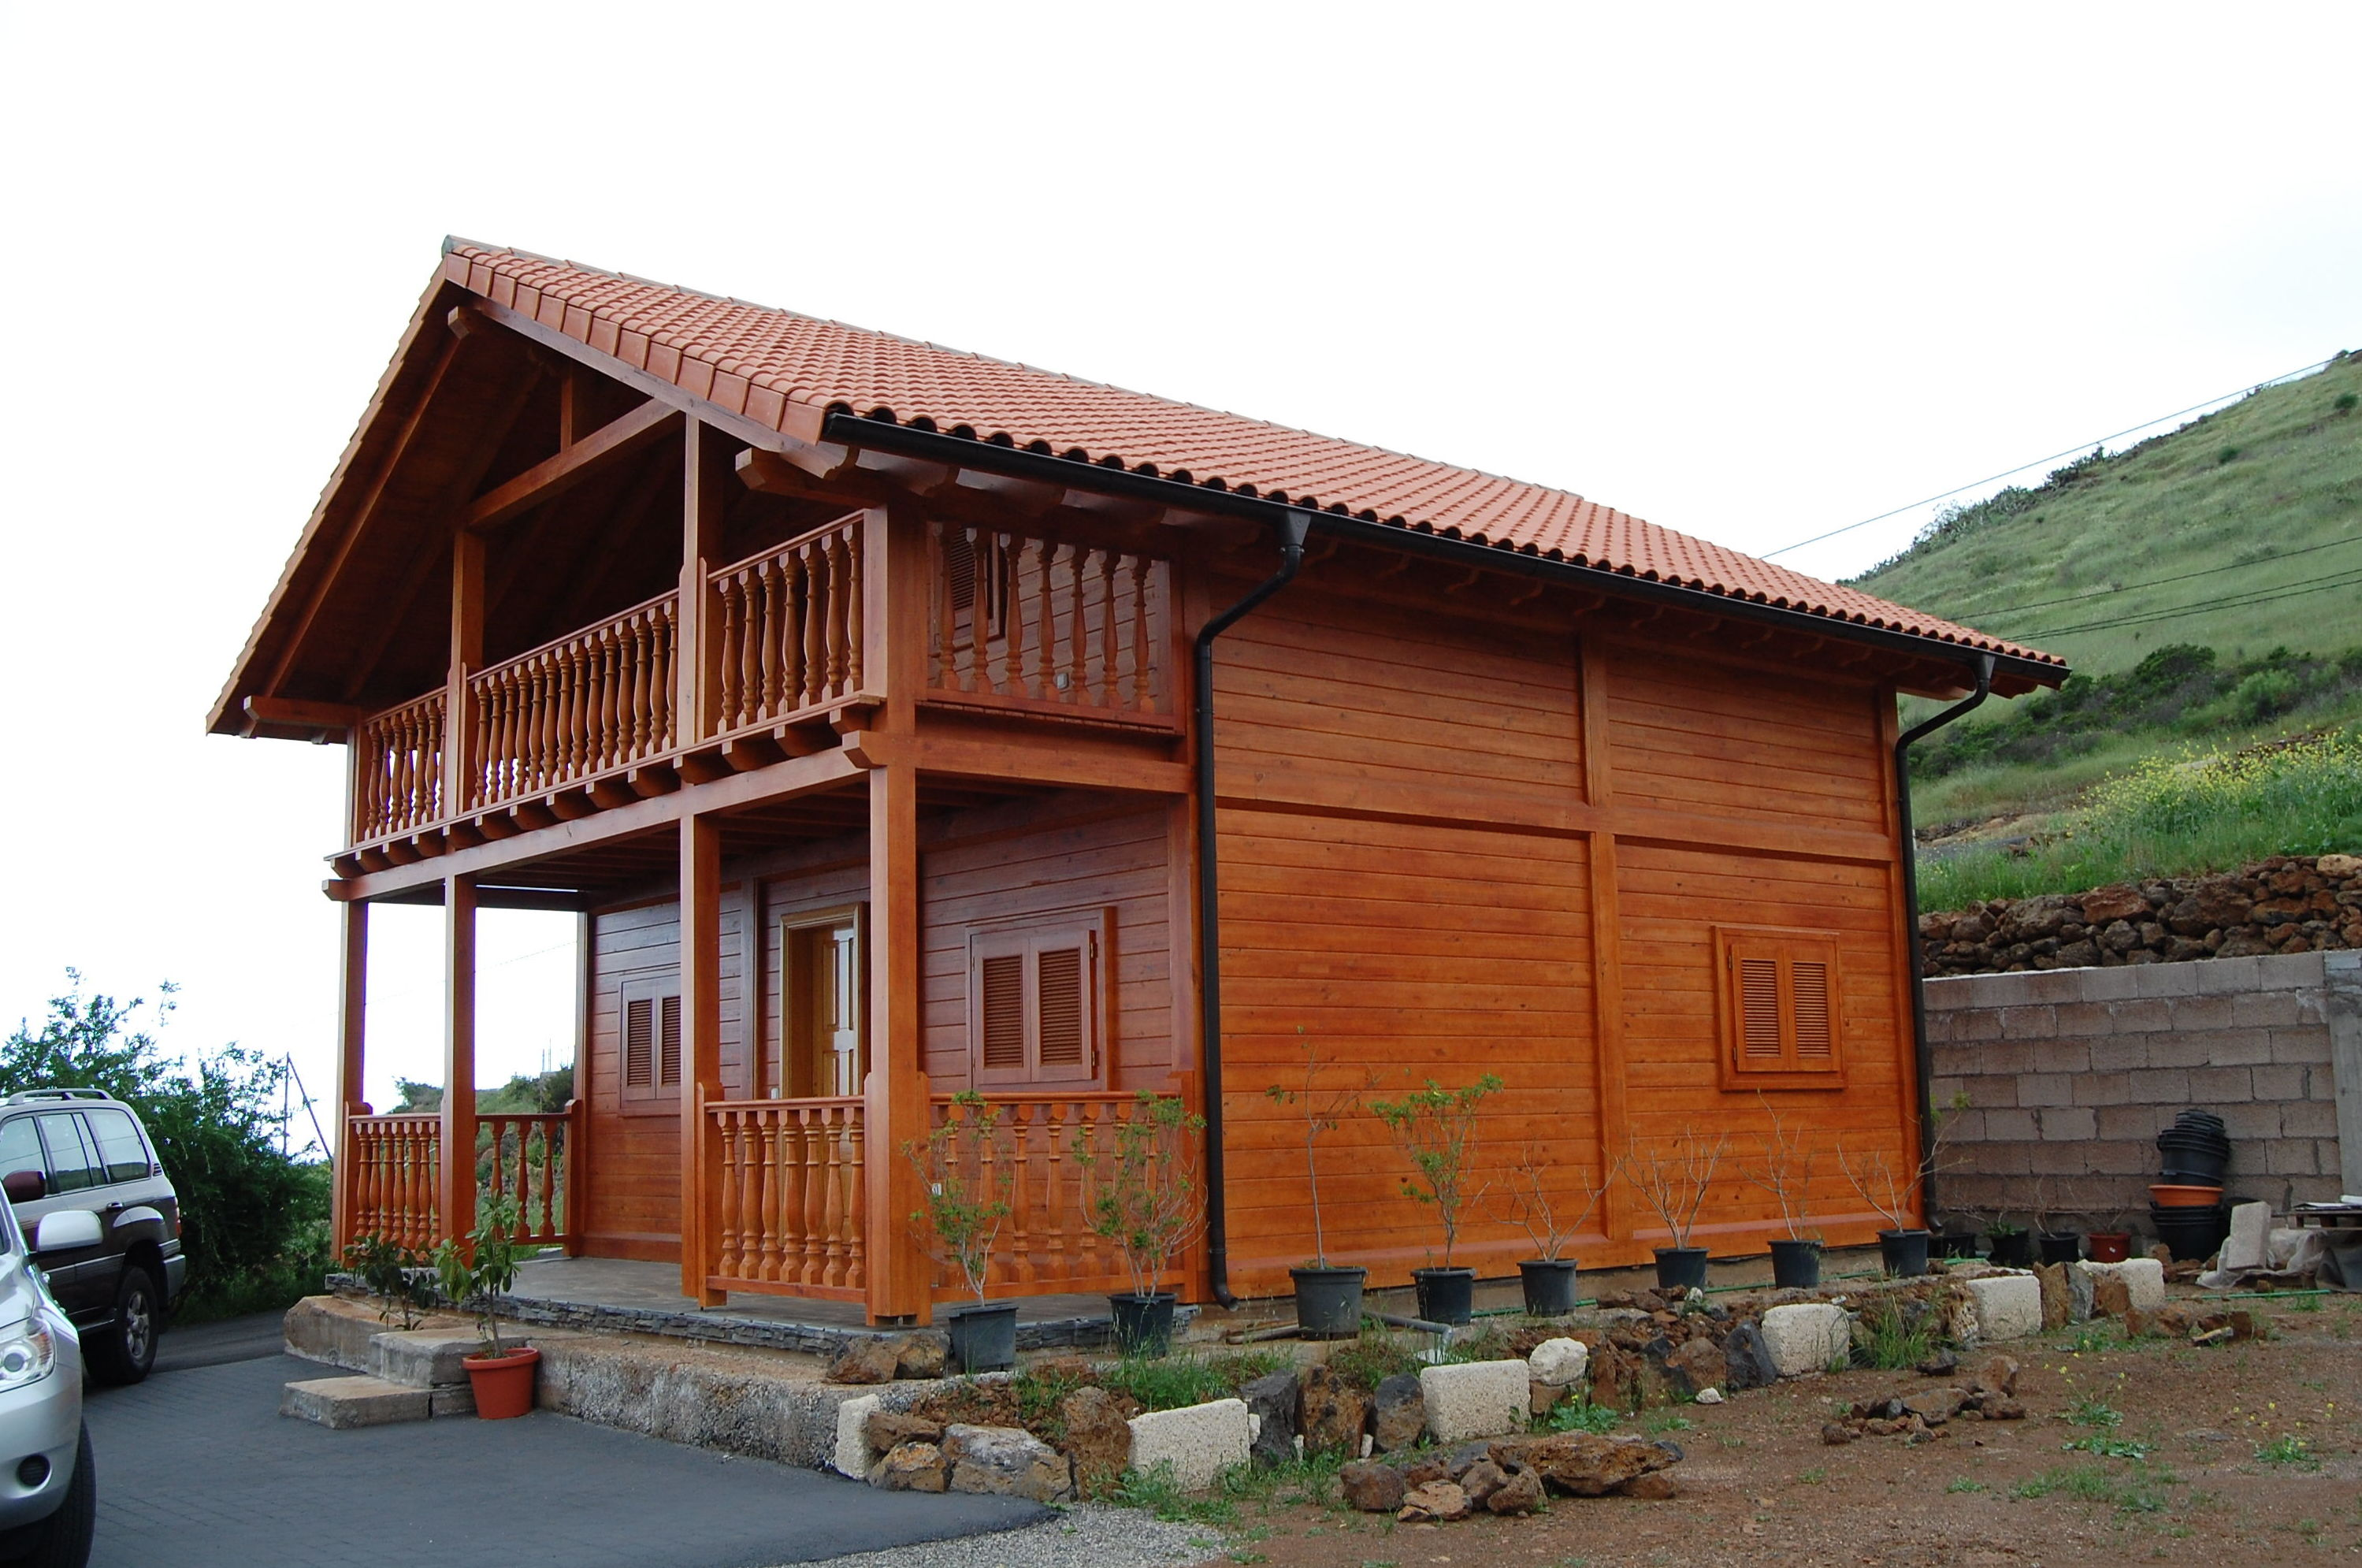 Wood house Cabin Las Americas